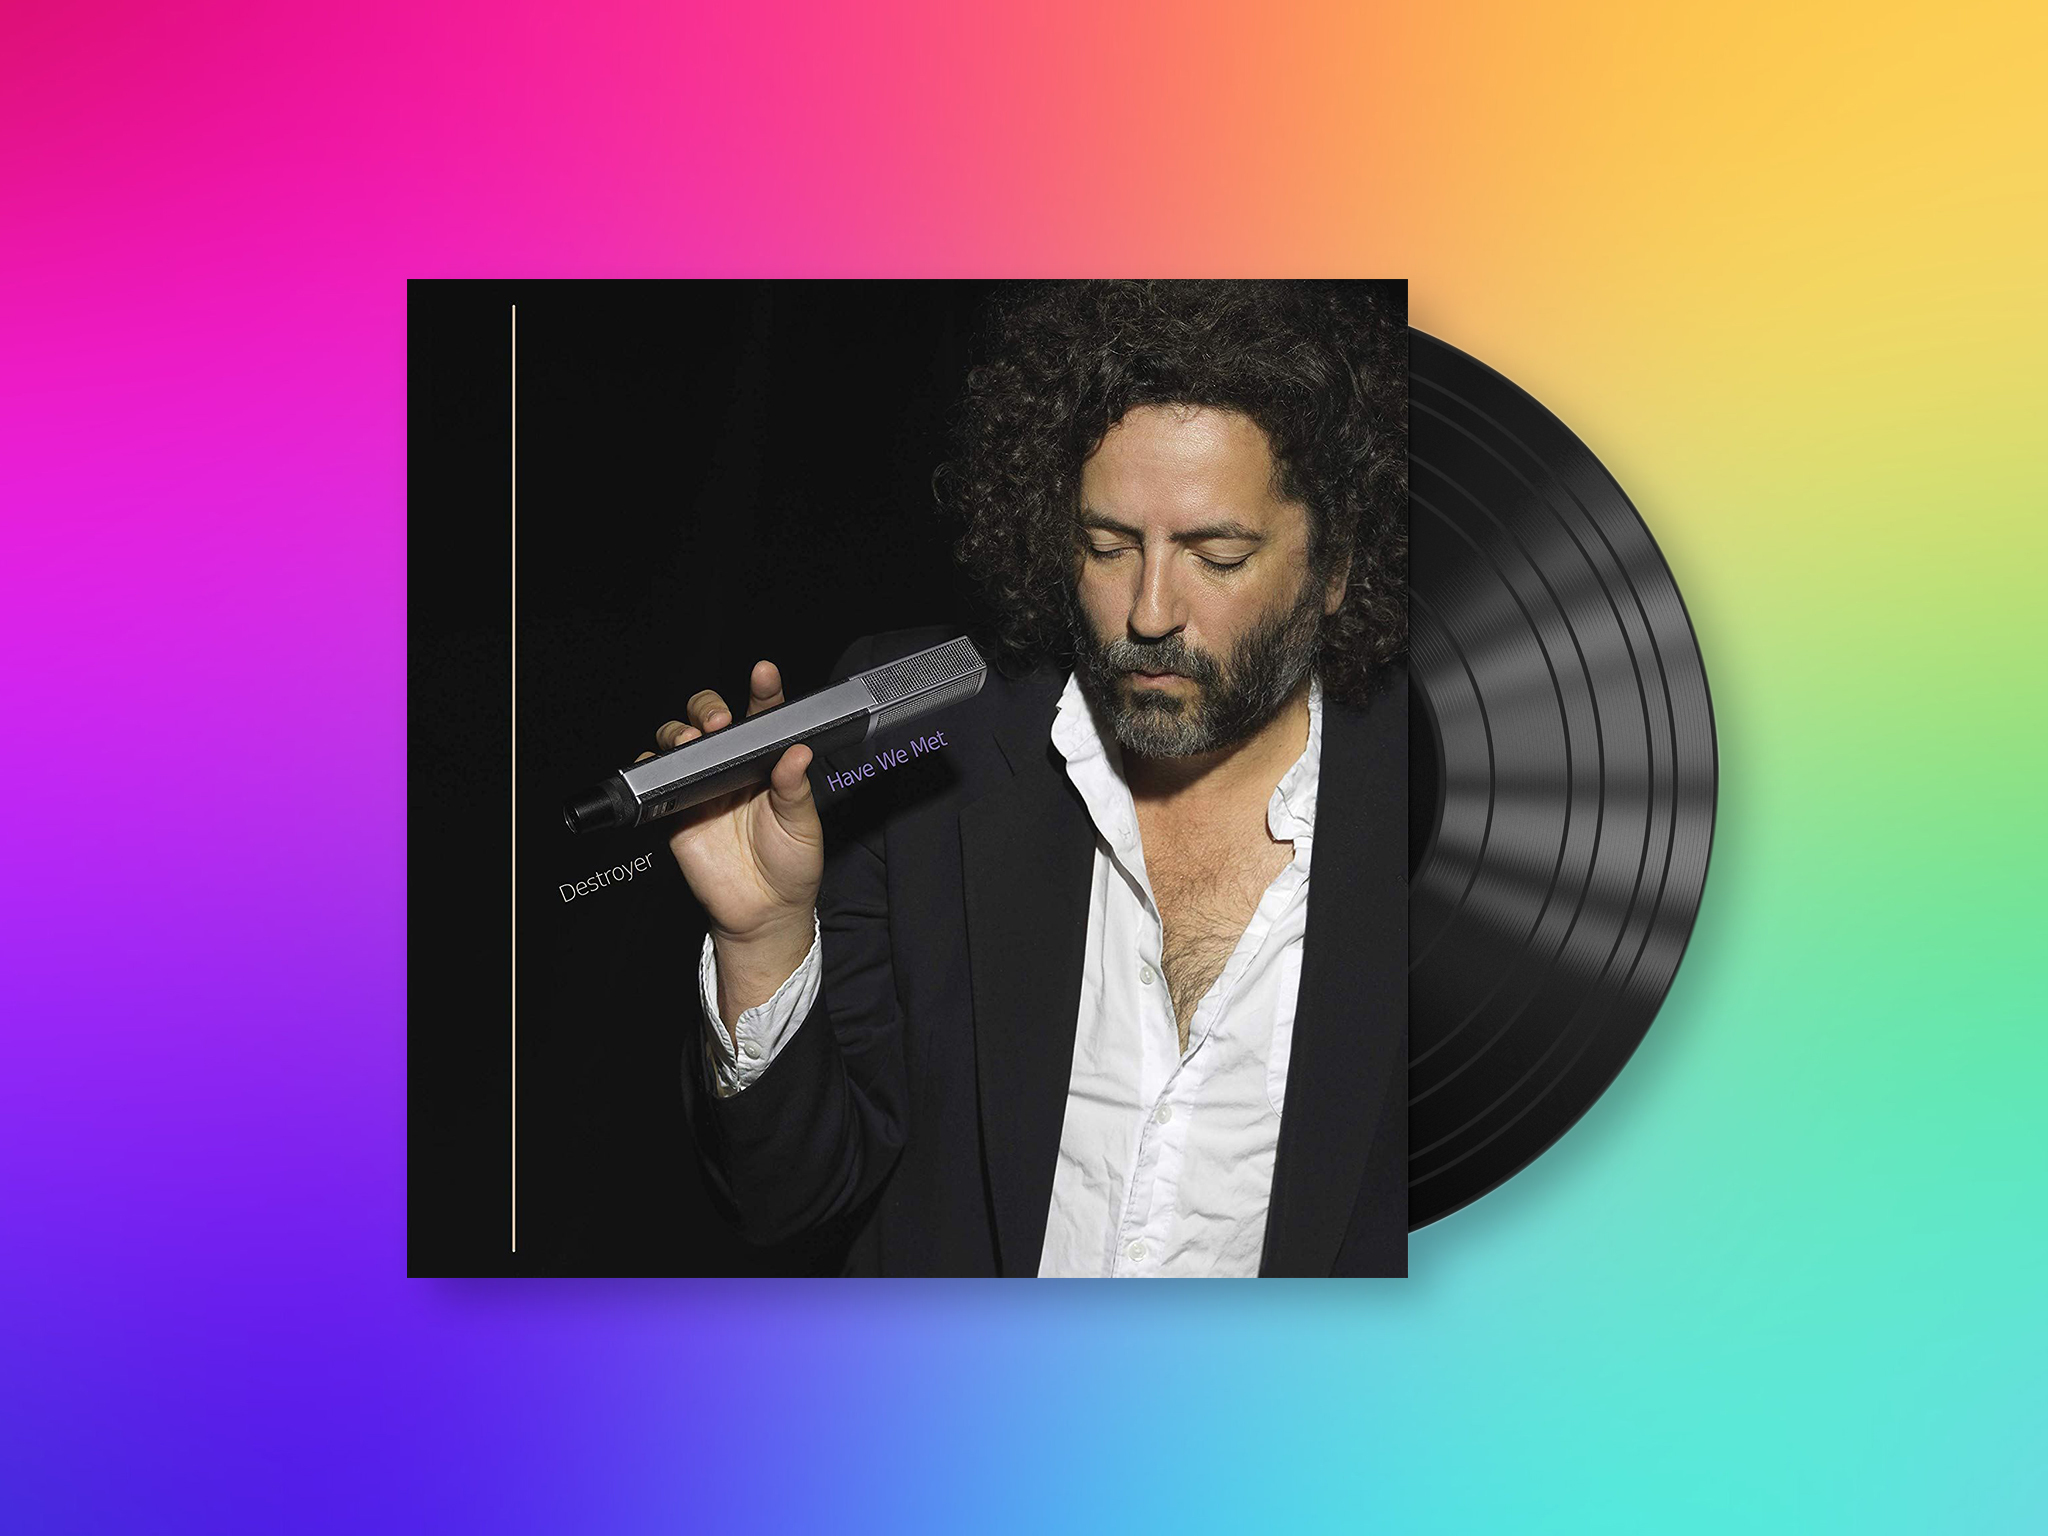 Have We Met, el nuevo disco de Destroyer